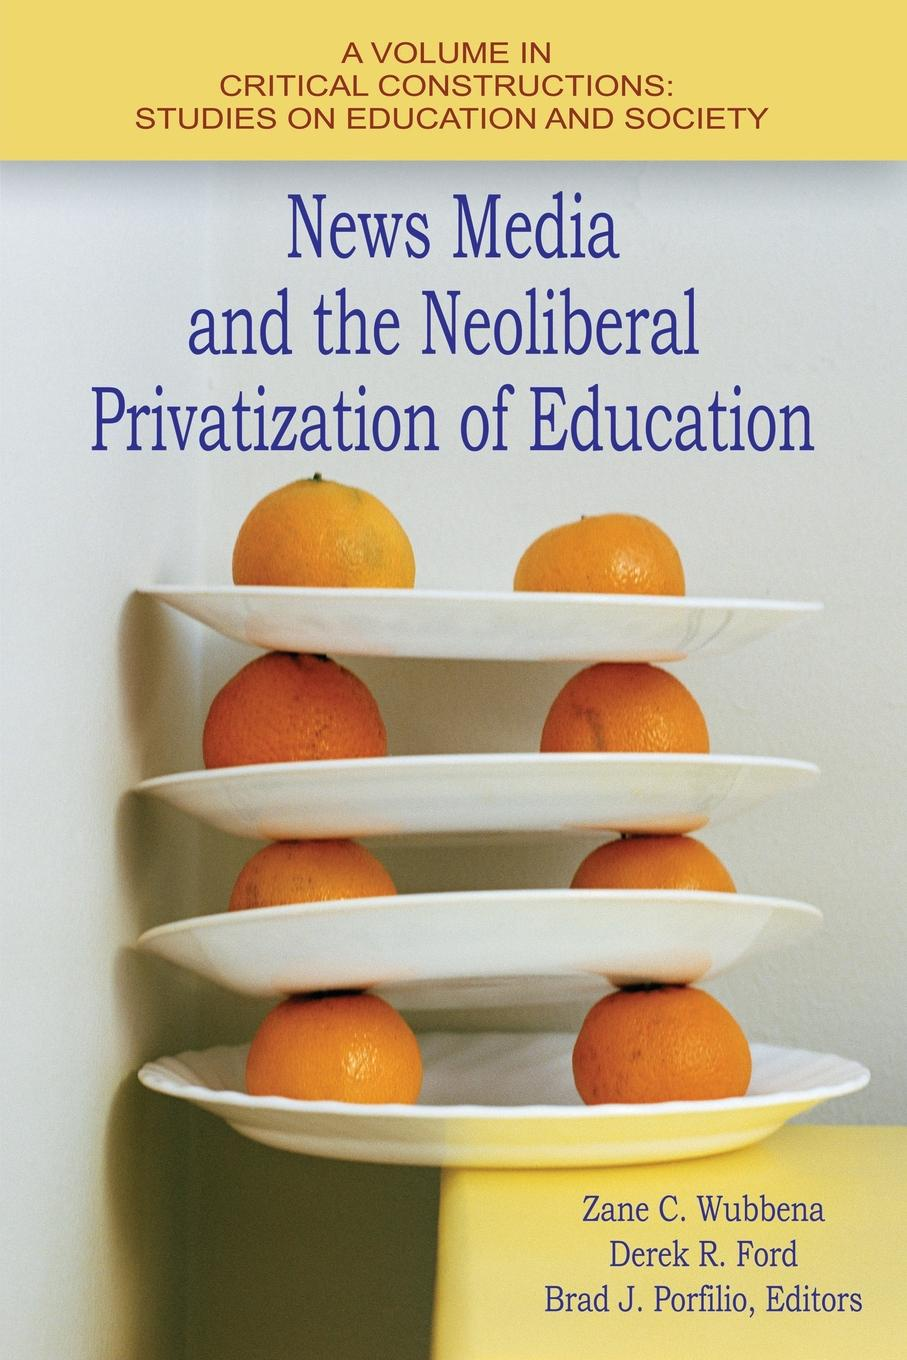 News Media and the Neoliberal Privatization of Education and now the news